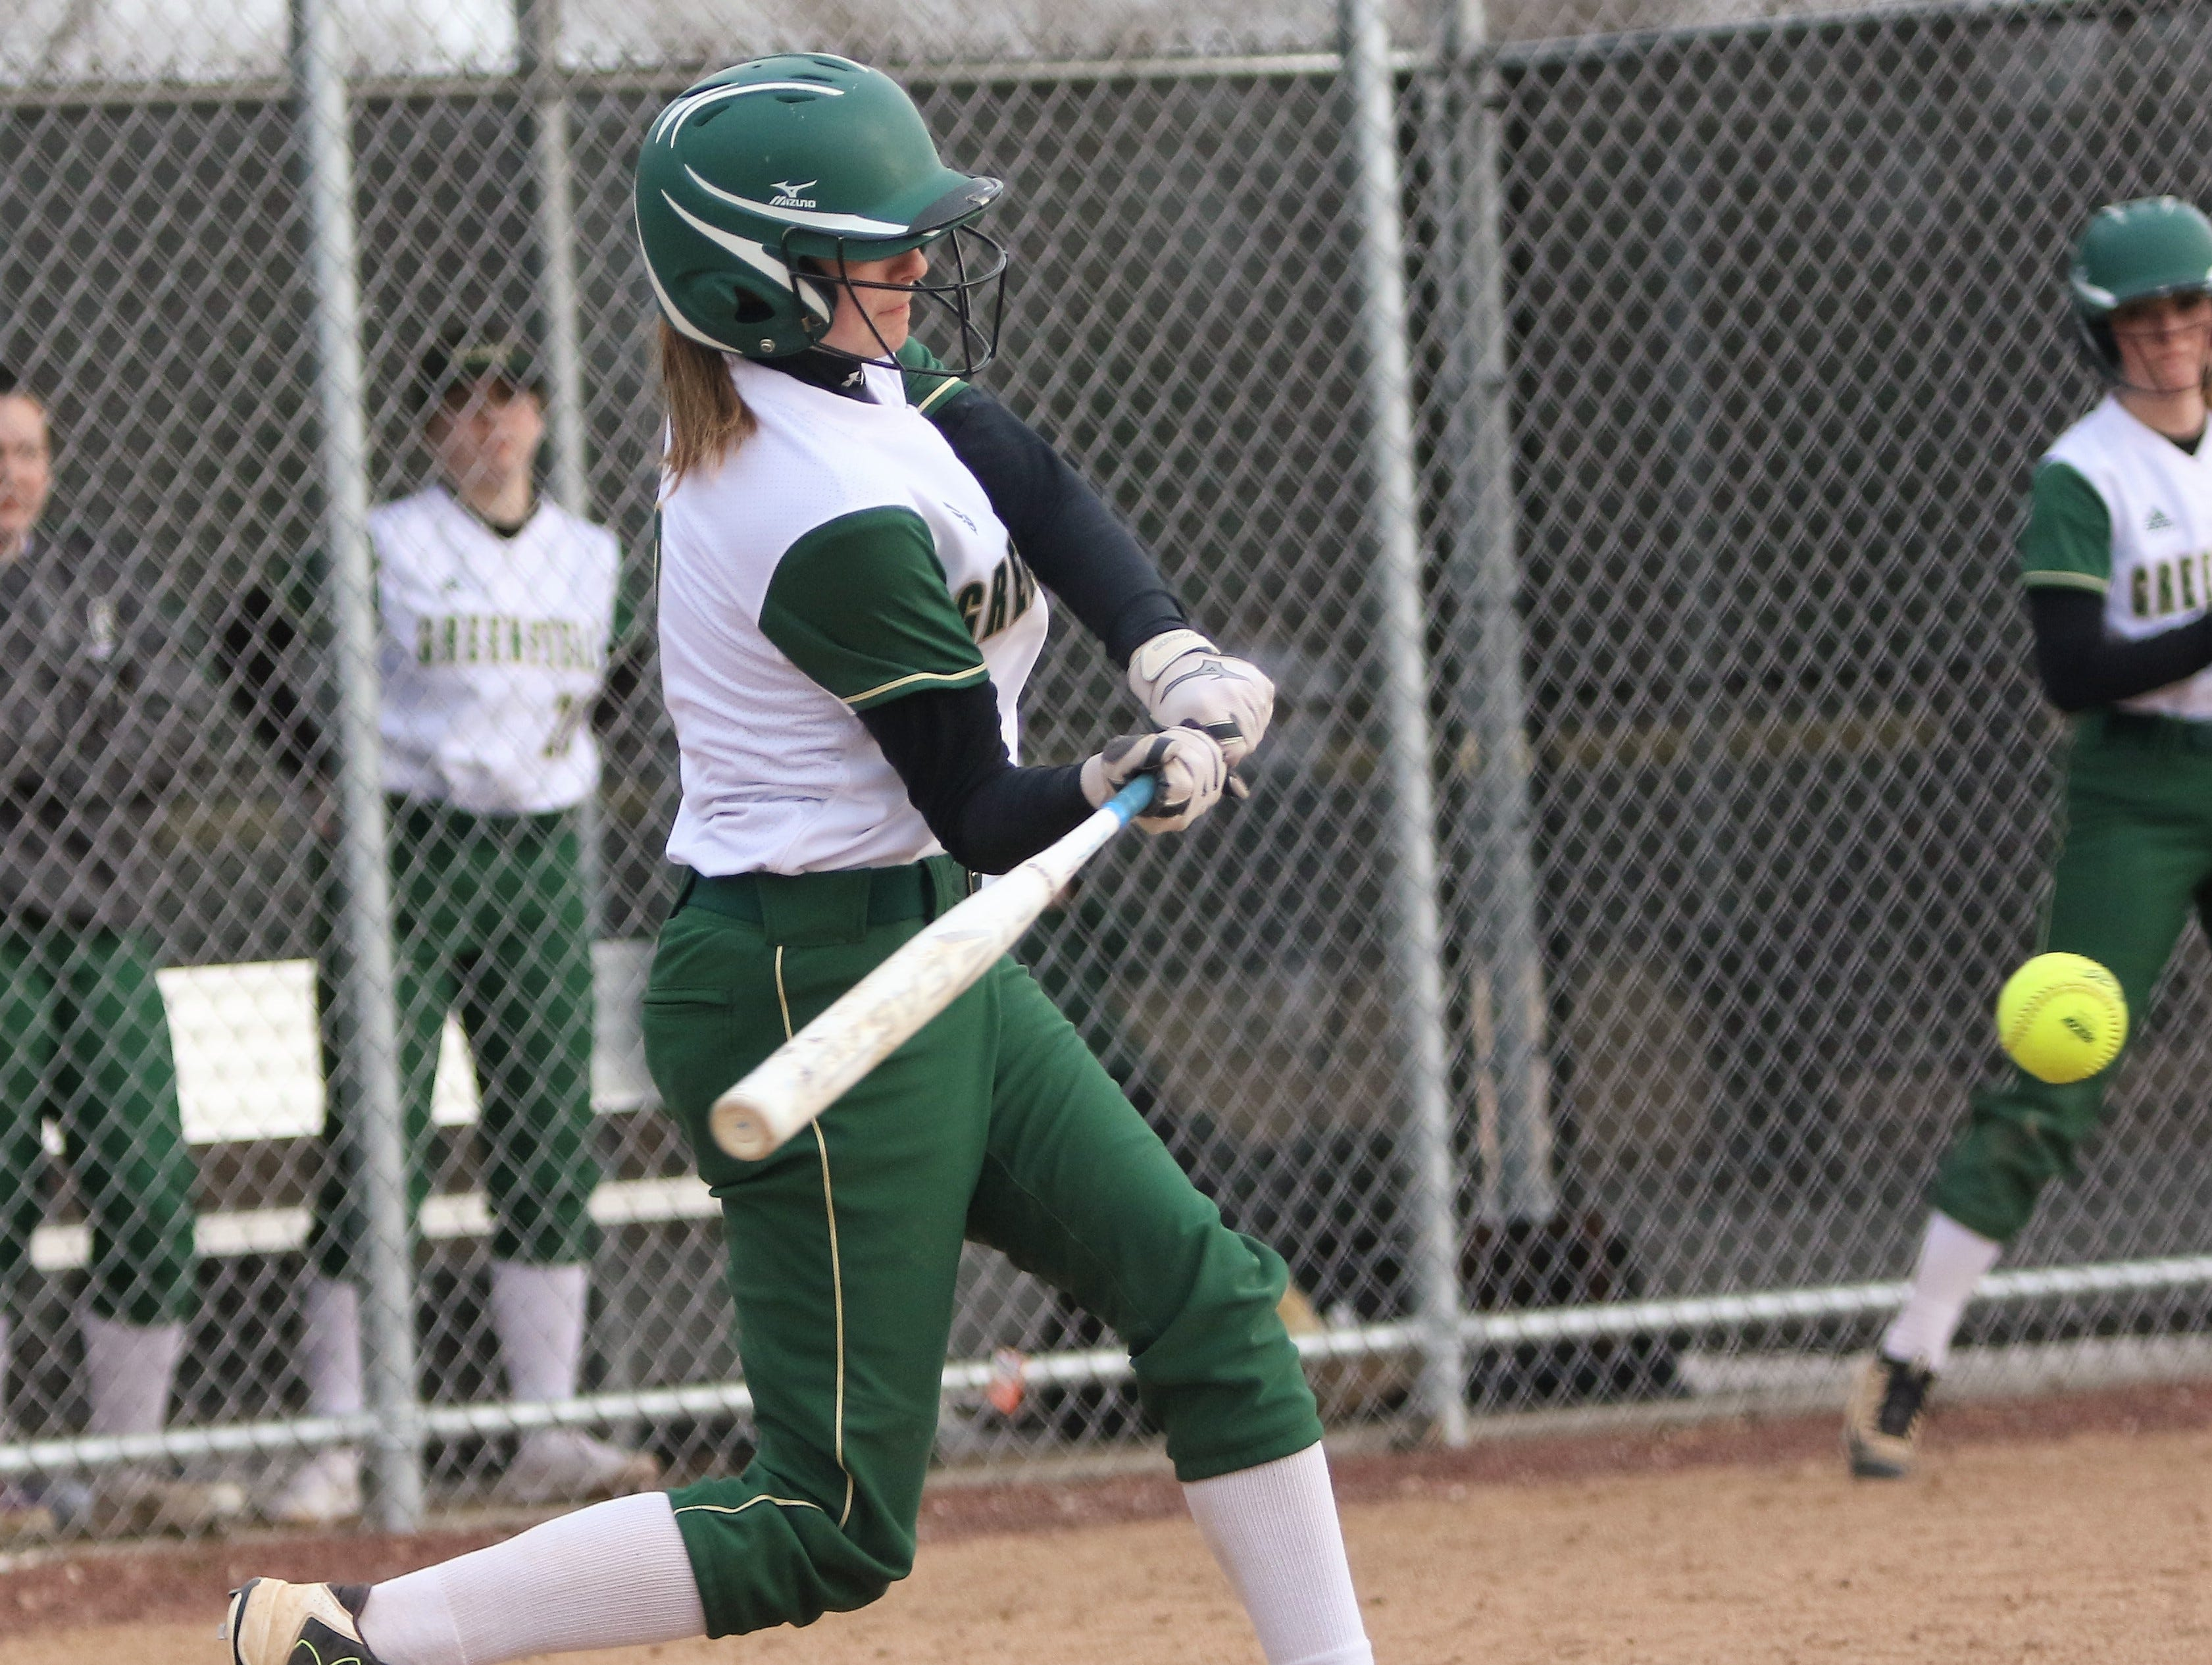 Greenfield junior Allison Mech takes a swing at a pitch during a game against Whitnall on April 3, 2019.